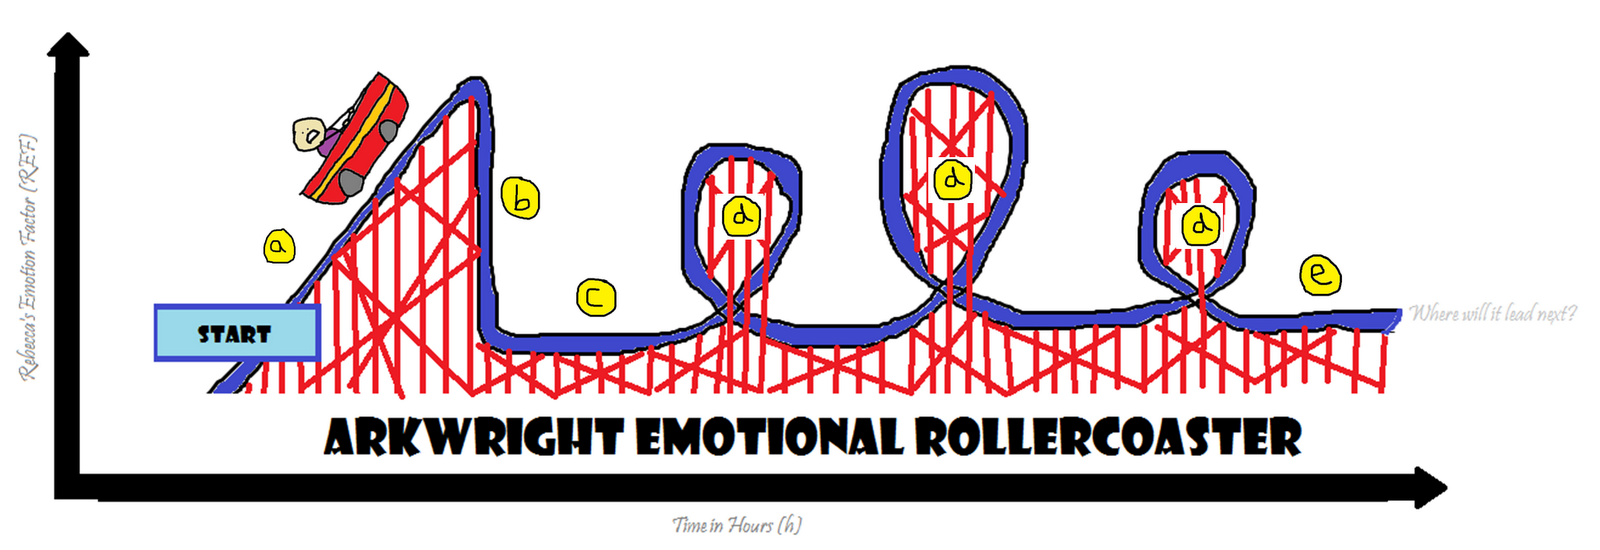 physics of roller coasters essay